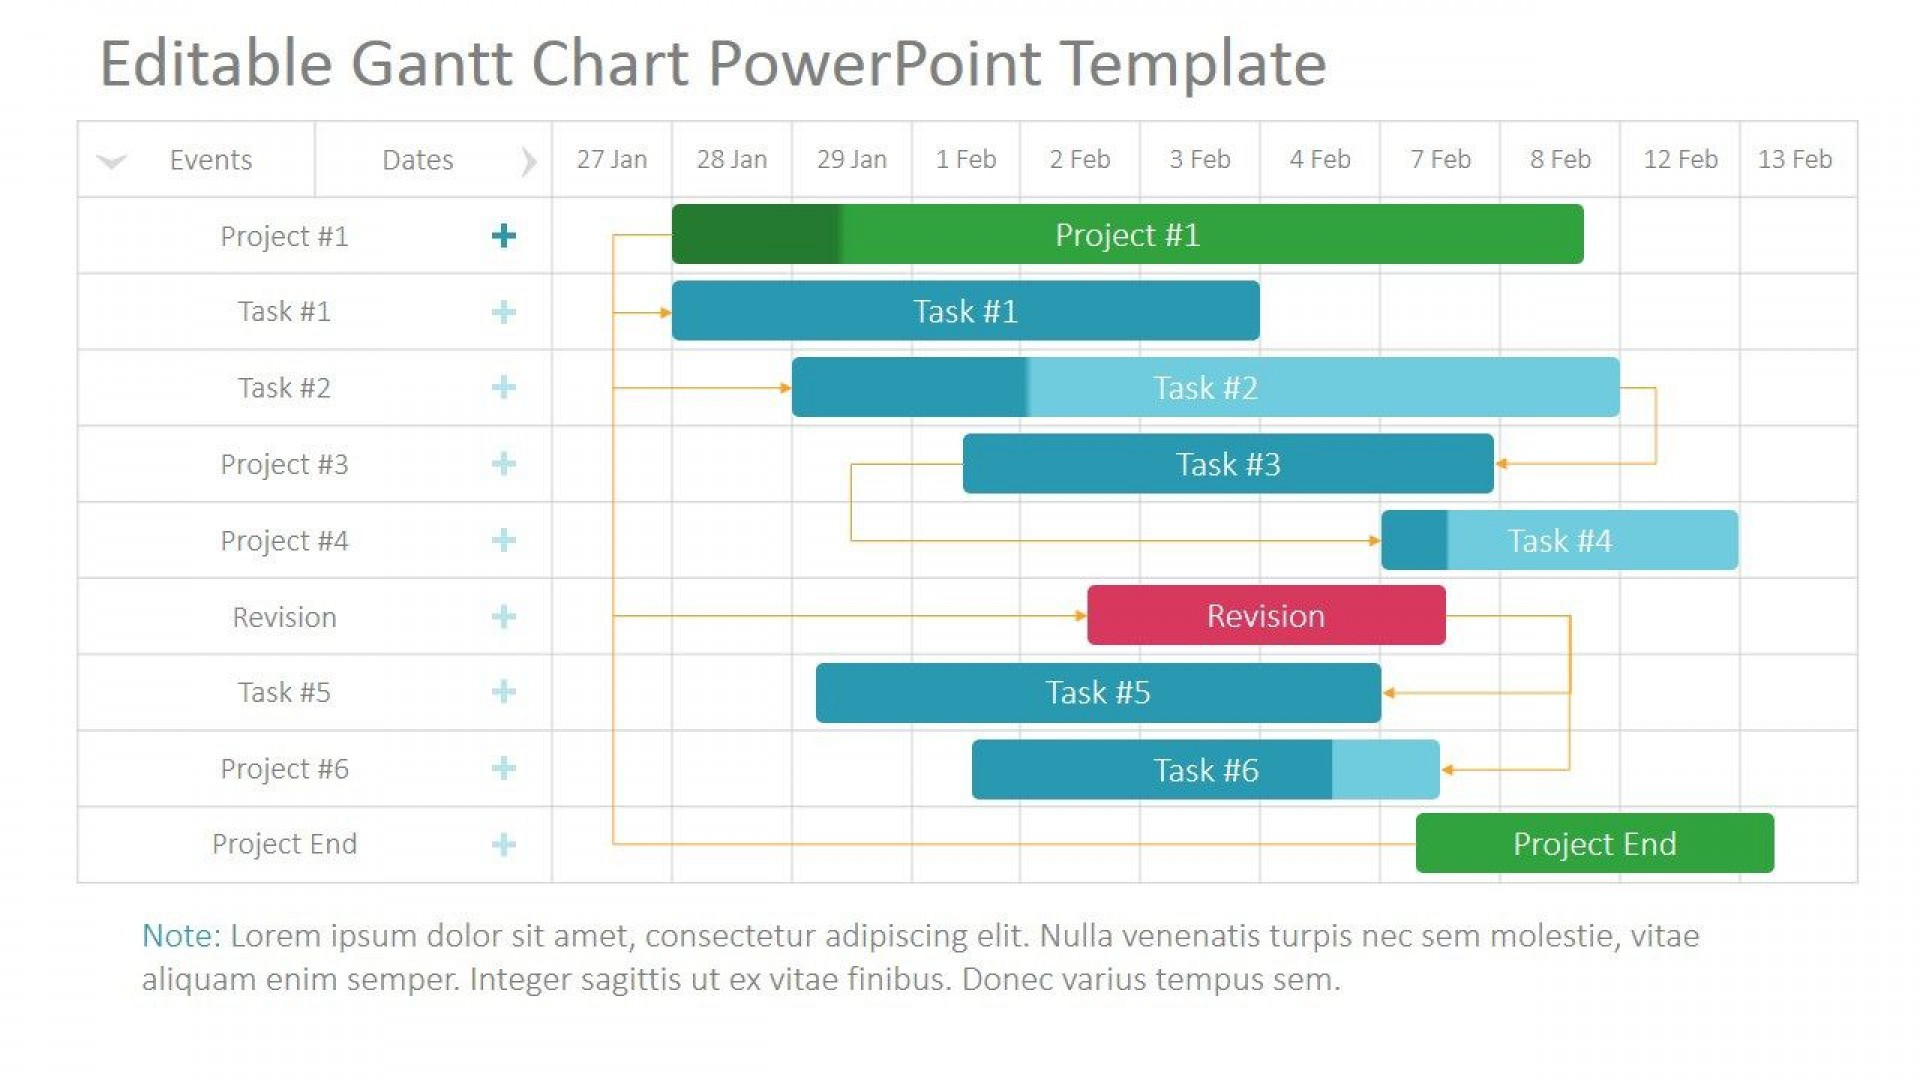 003 Exceptional Project Timeline Template Powerpoint Highest Quality  M Ppt Free Download1920